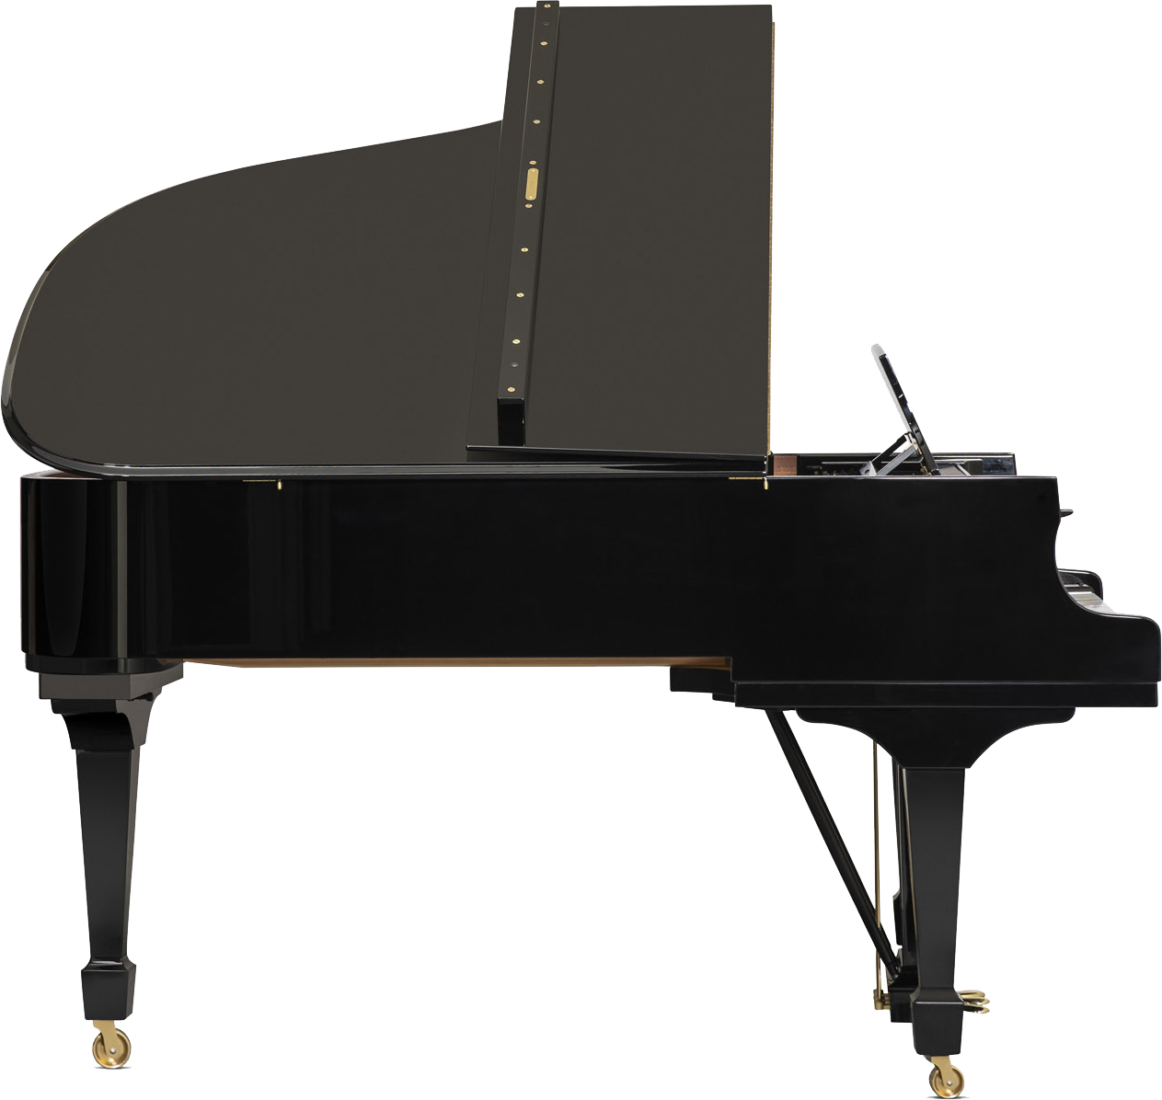 piano-cola-steinway-sons-a188-artesanal-nuevo-negro-lateral-02